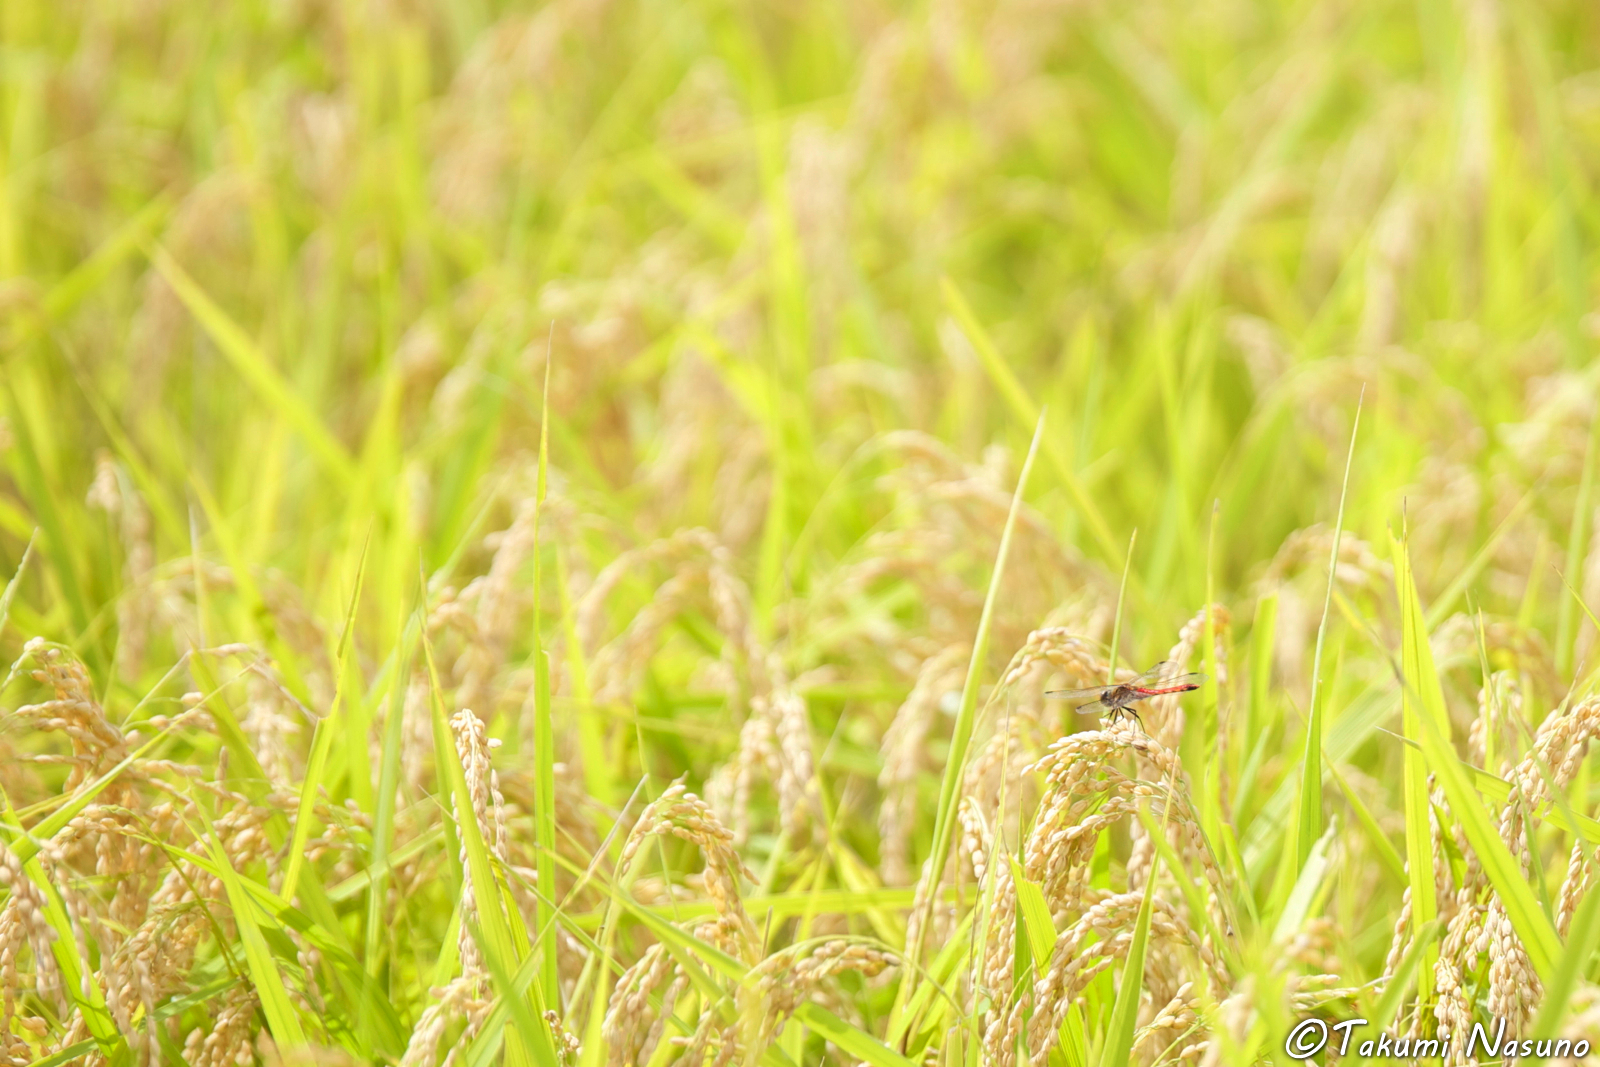 dragonfly-at-the-paddy-fields-of-yashirogawa-district-of-tanagura-town